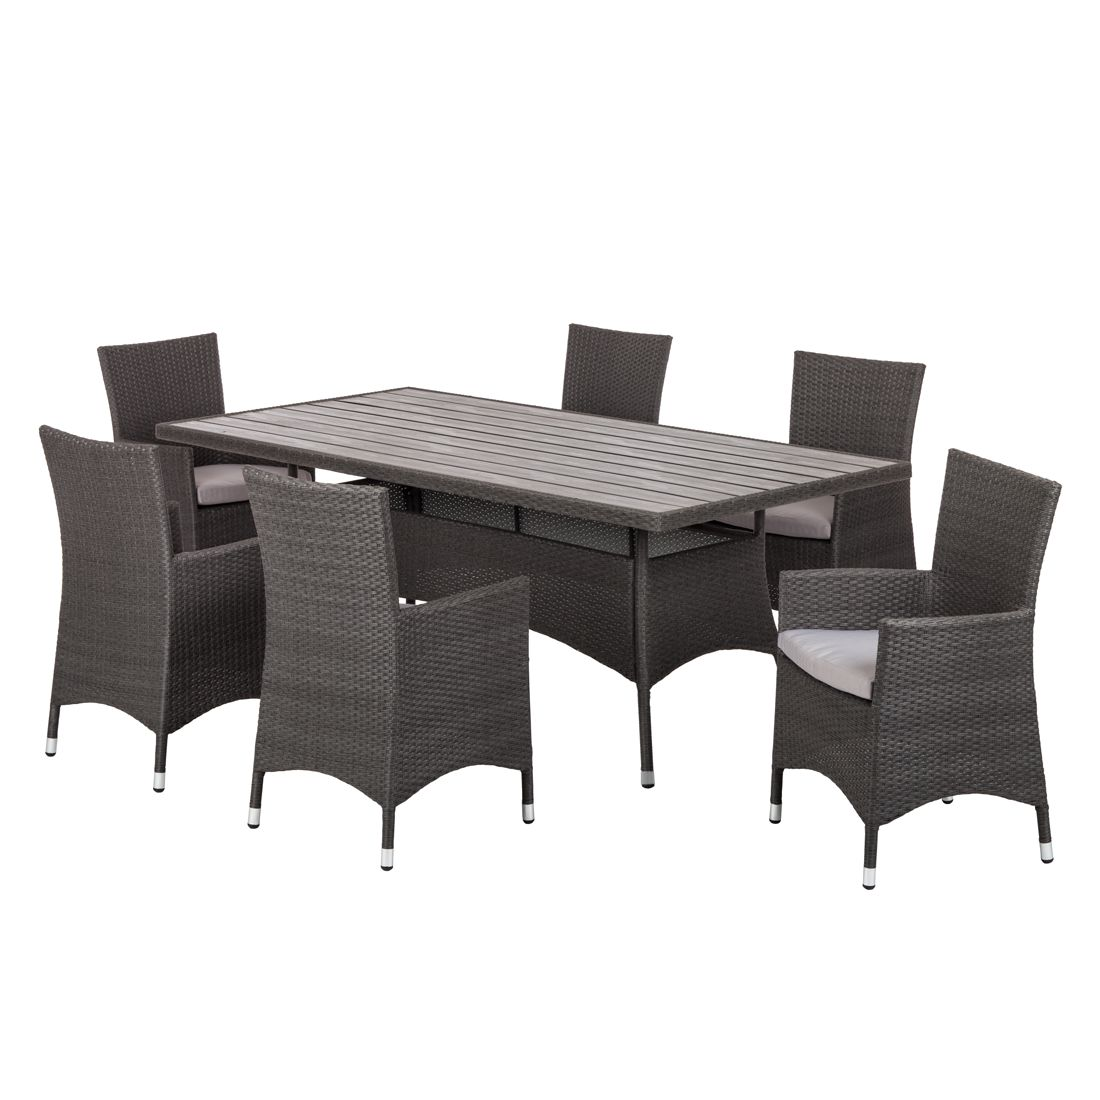 sitzgruppe paradise lounge i 7 teilig polyrattan grau eden company. Black Bedroom Furniture Sets. Home Design Ideas